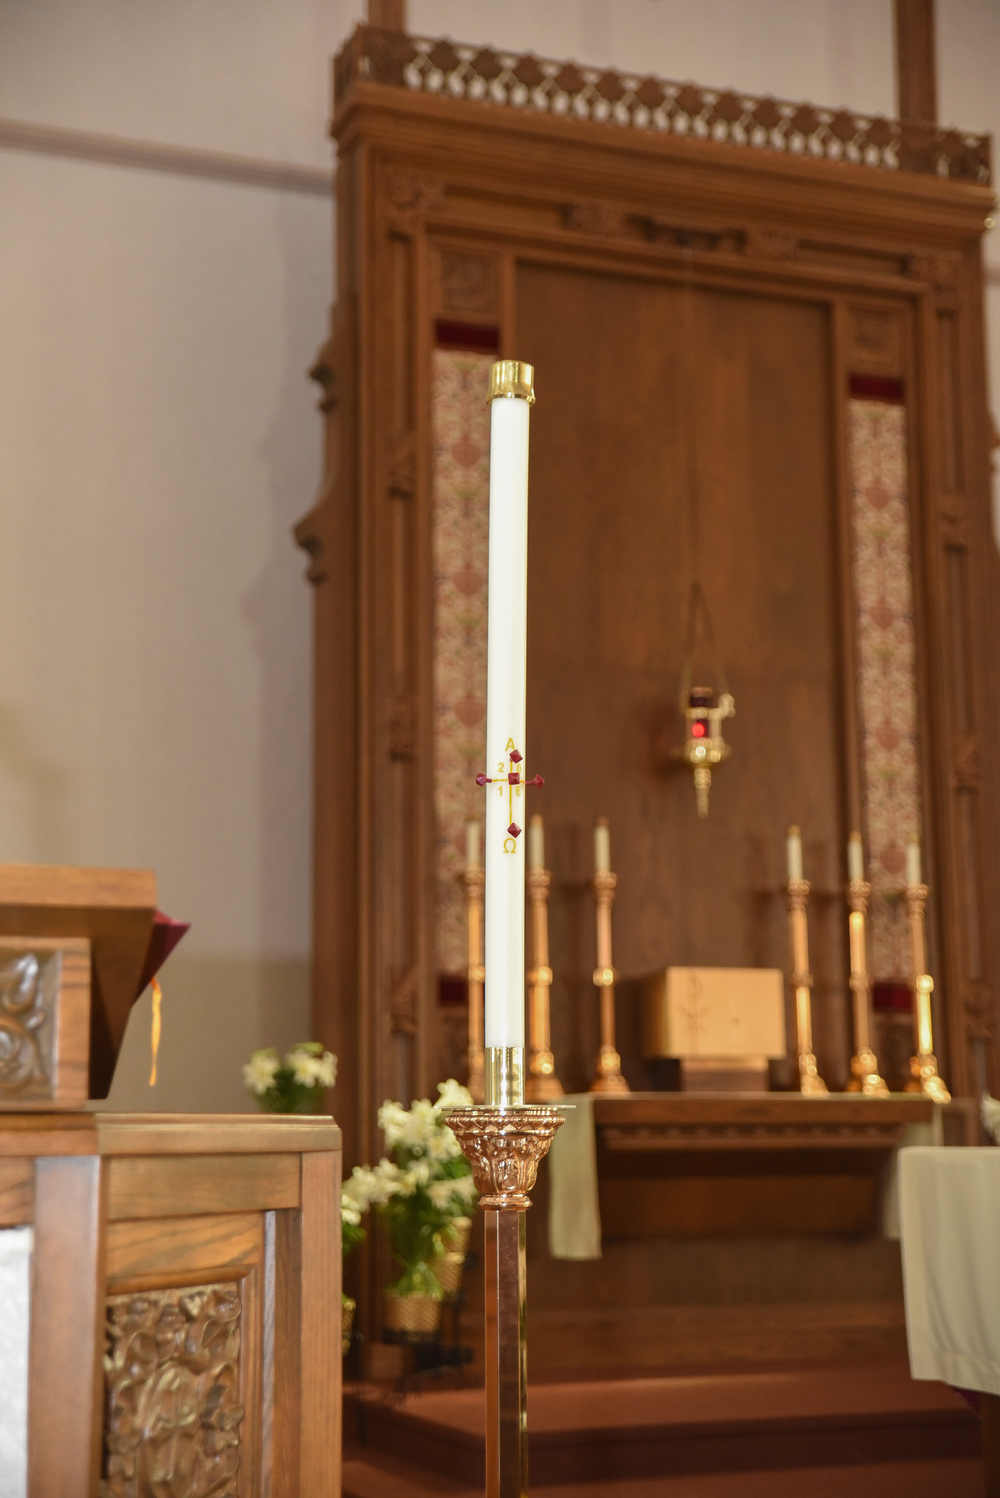 Baptism st josephs church candles these symbolize christ the light of the world the baptismal candle is lit from the paschal candle which stands near the altar at easter as sign biocorpaavc Choice Image